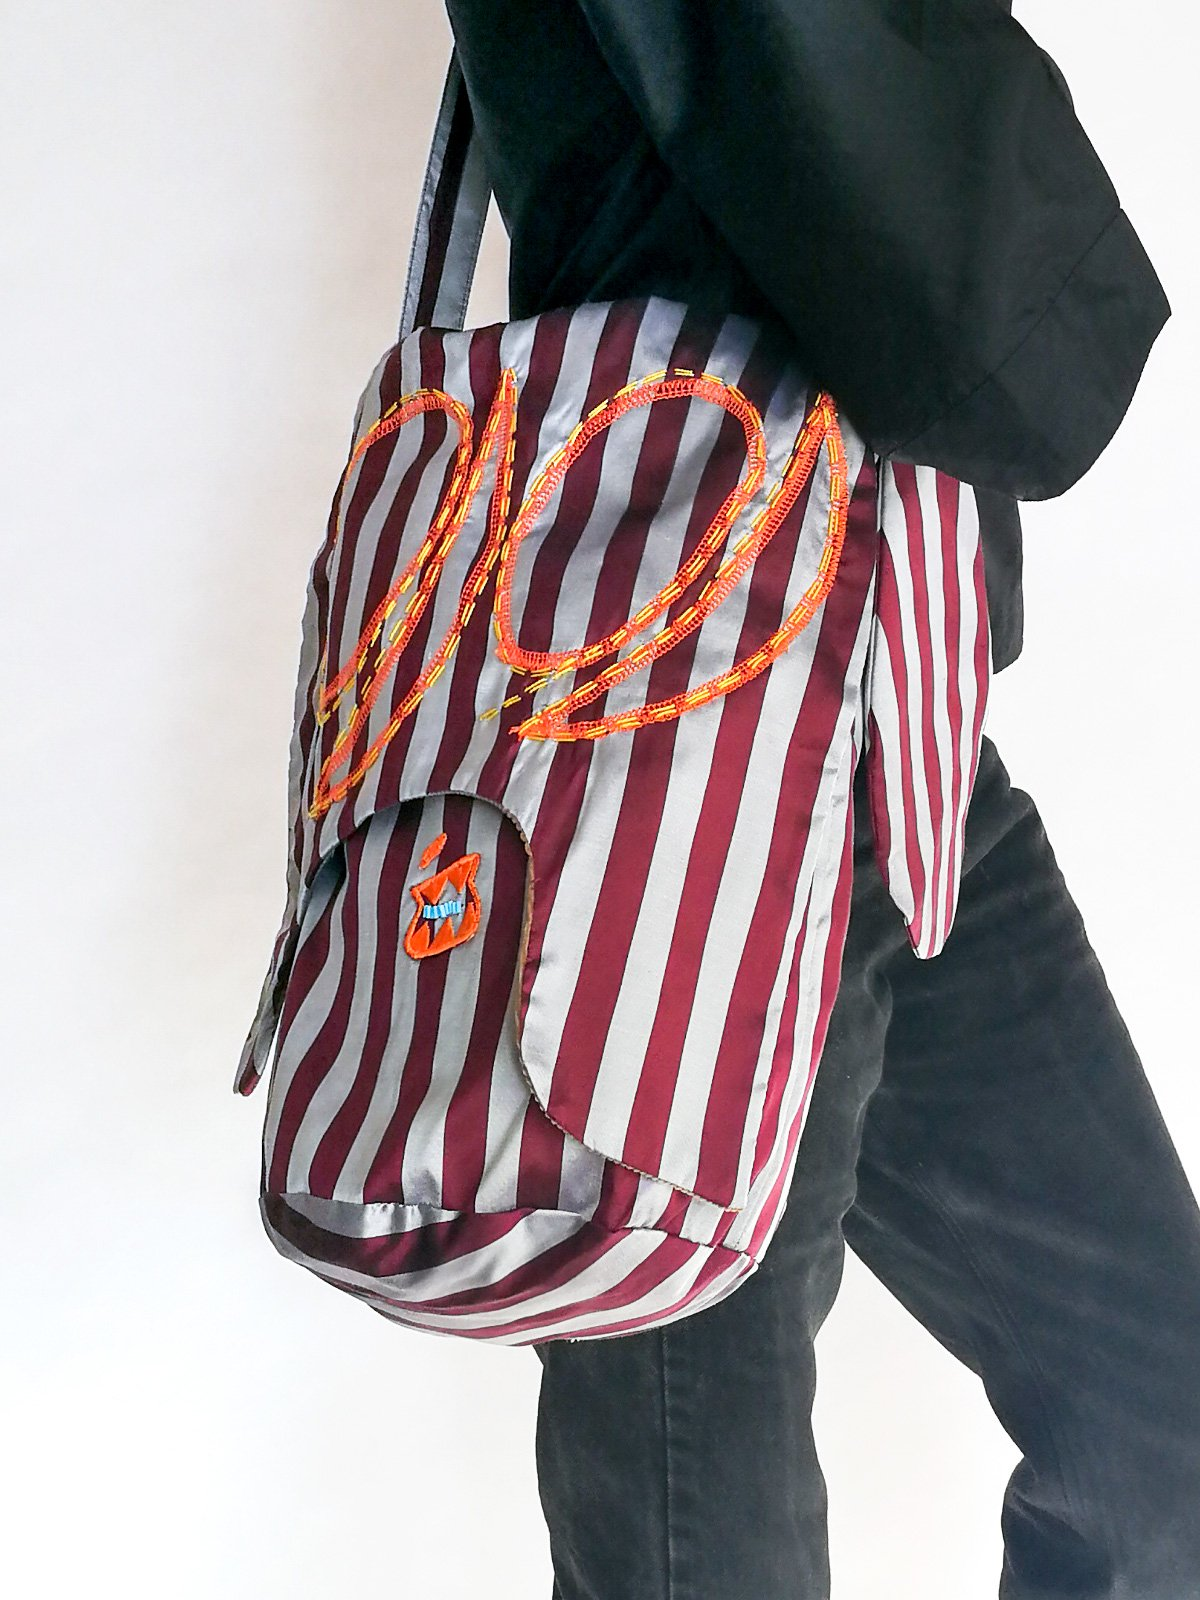 Skoloct Bag (hand stitch) / original bordeaux